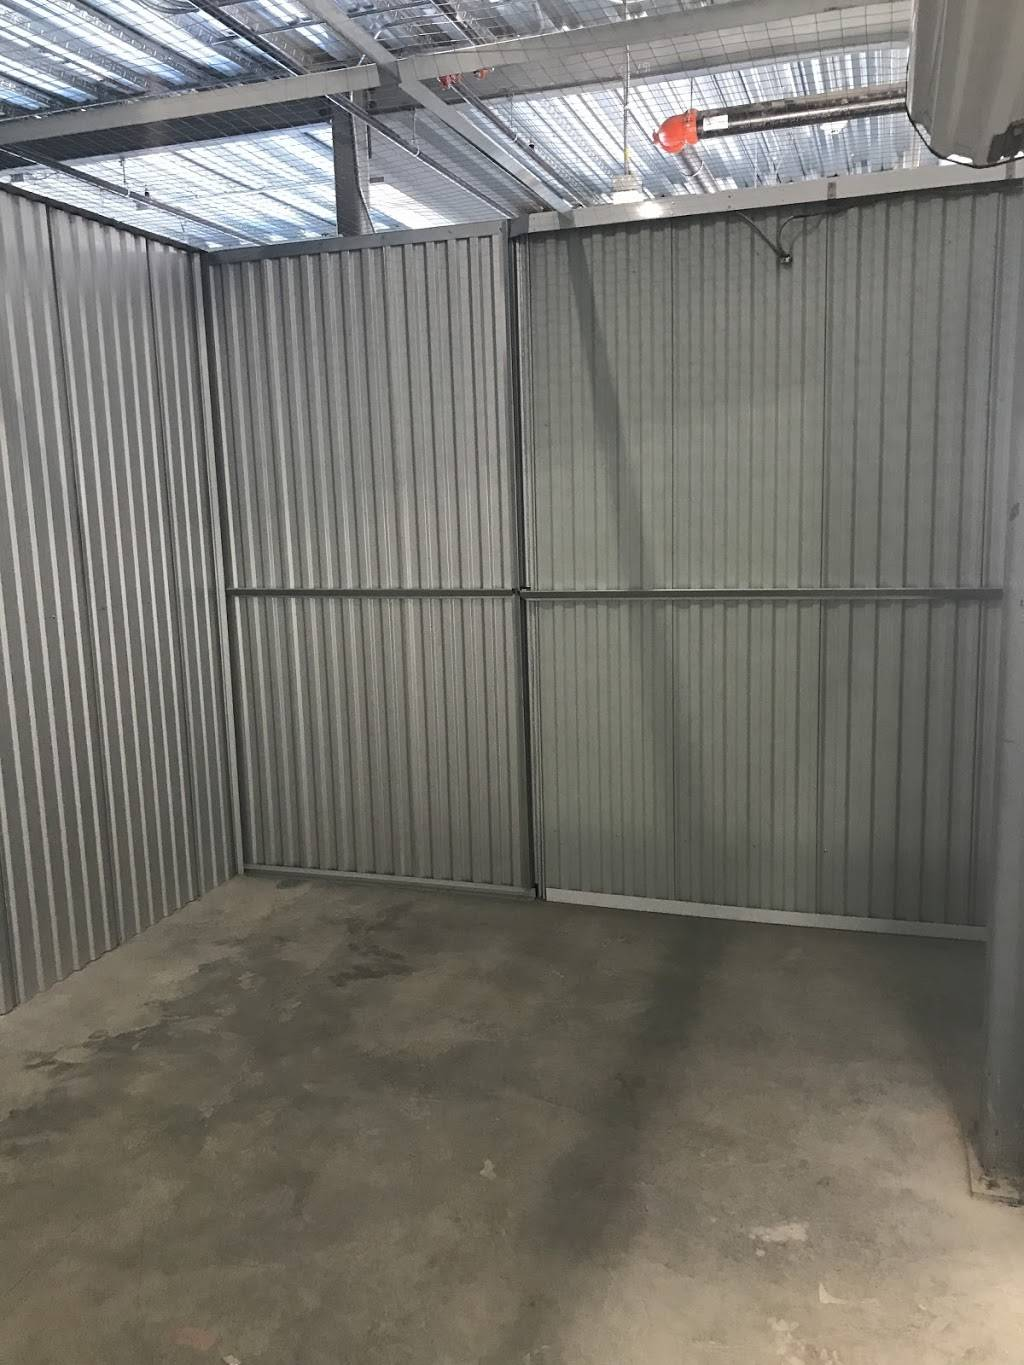 Extra Space Storage - moving company  | Photo 7 of 10 | Address: 4151 Doie Cope Rd, Raleigh, NC 27613, USA | Phone: (919) 670-3130